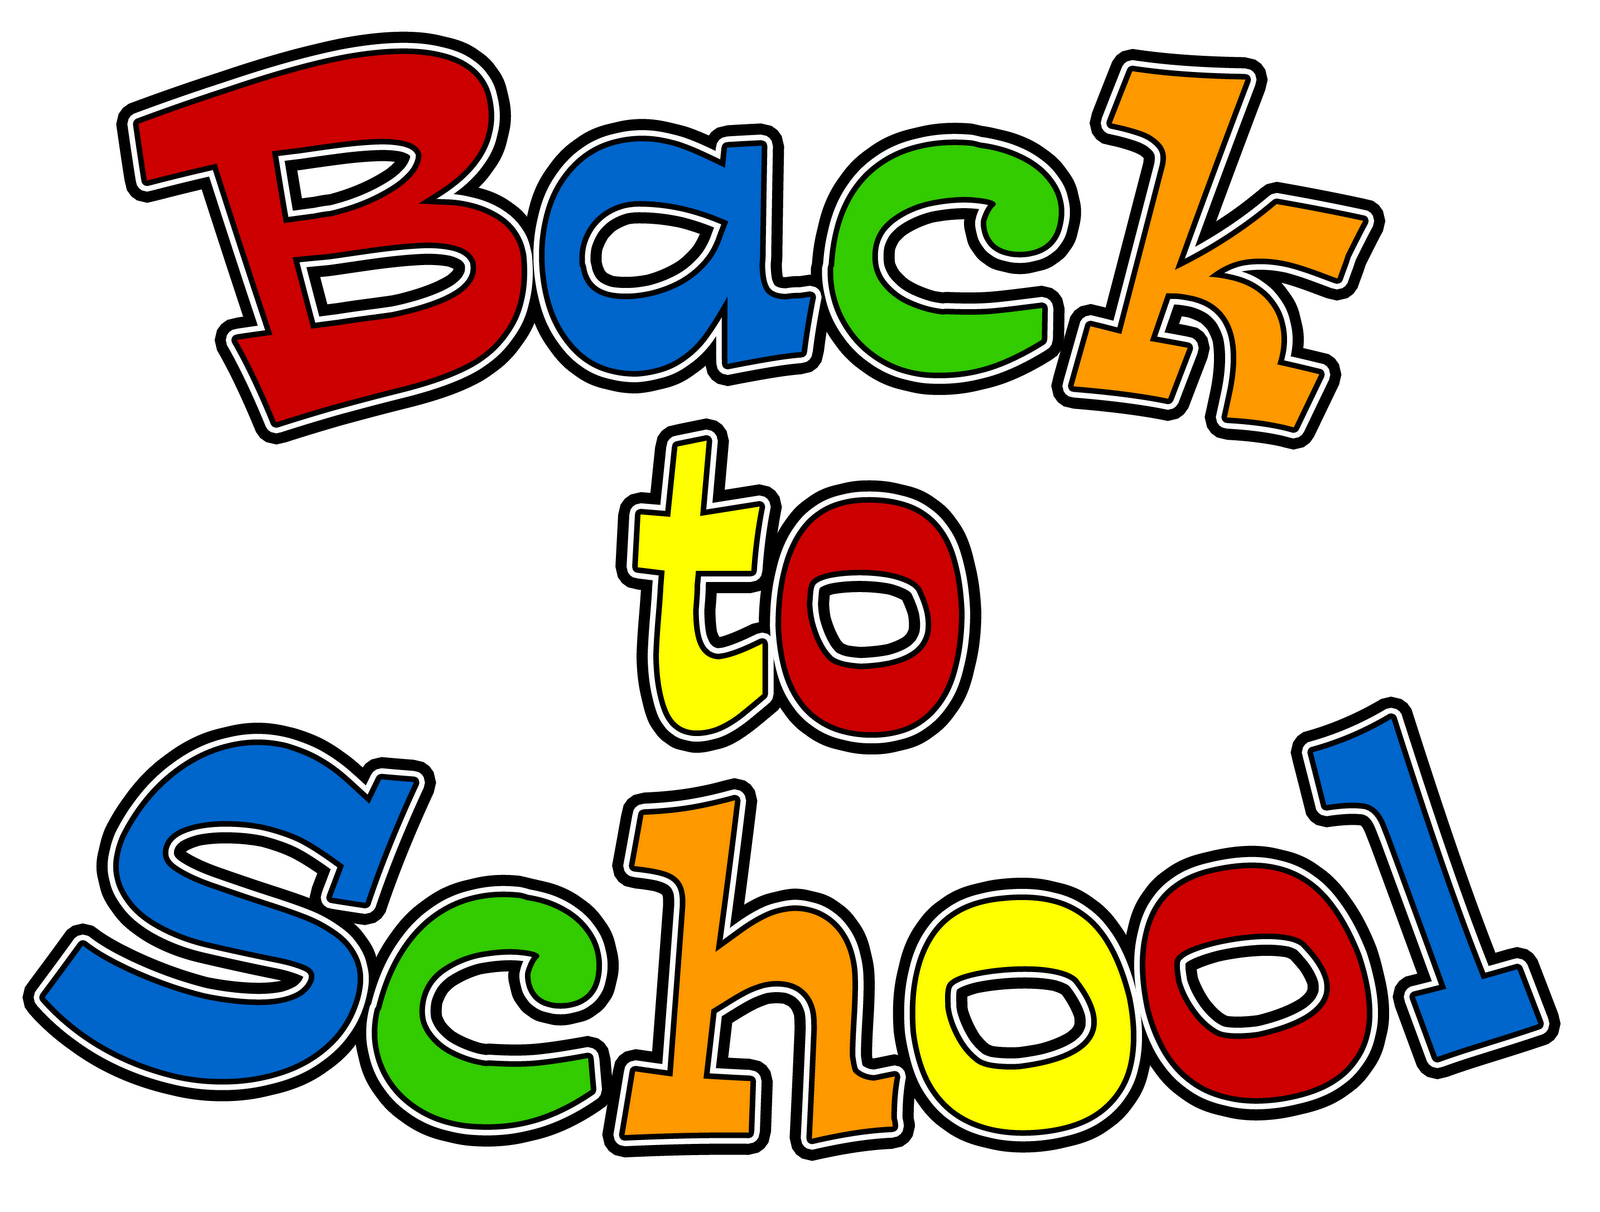 School community clipart svg library 28+ Collection of First Day Of School Clipart | High quality, free ... svg library